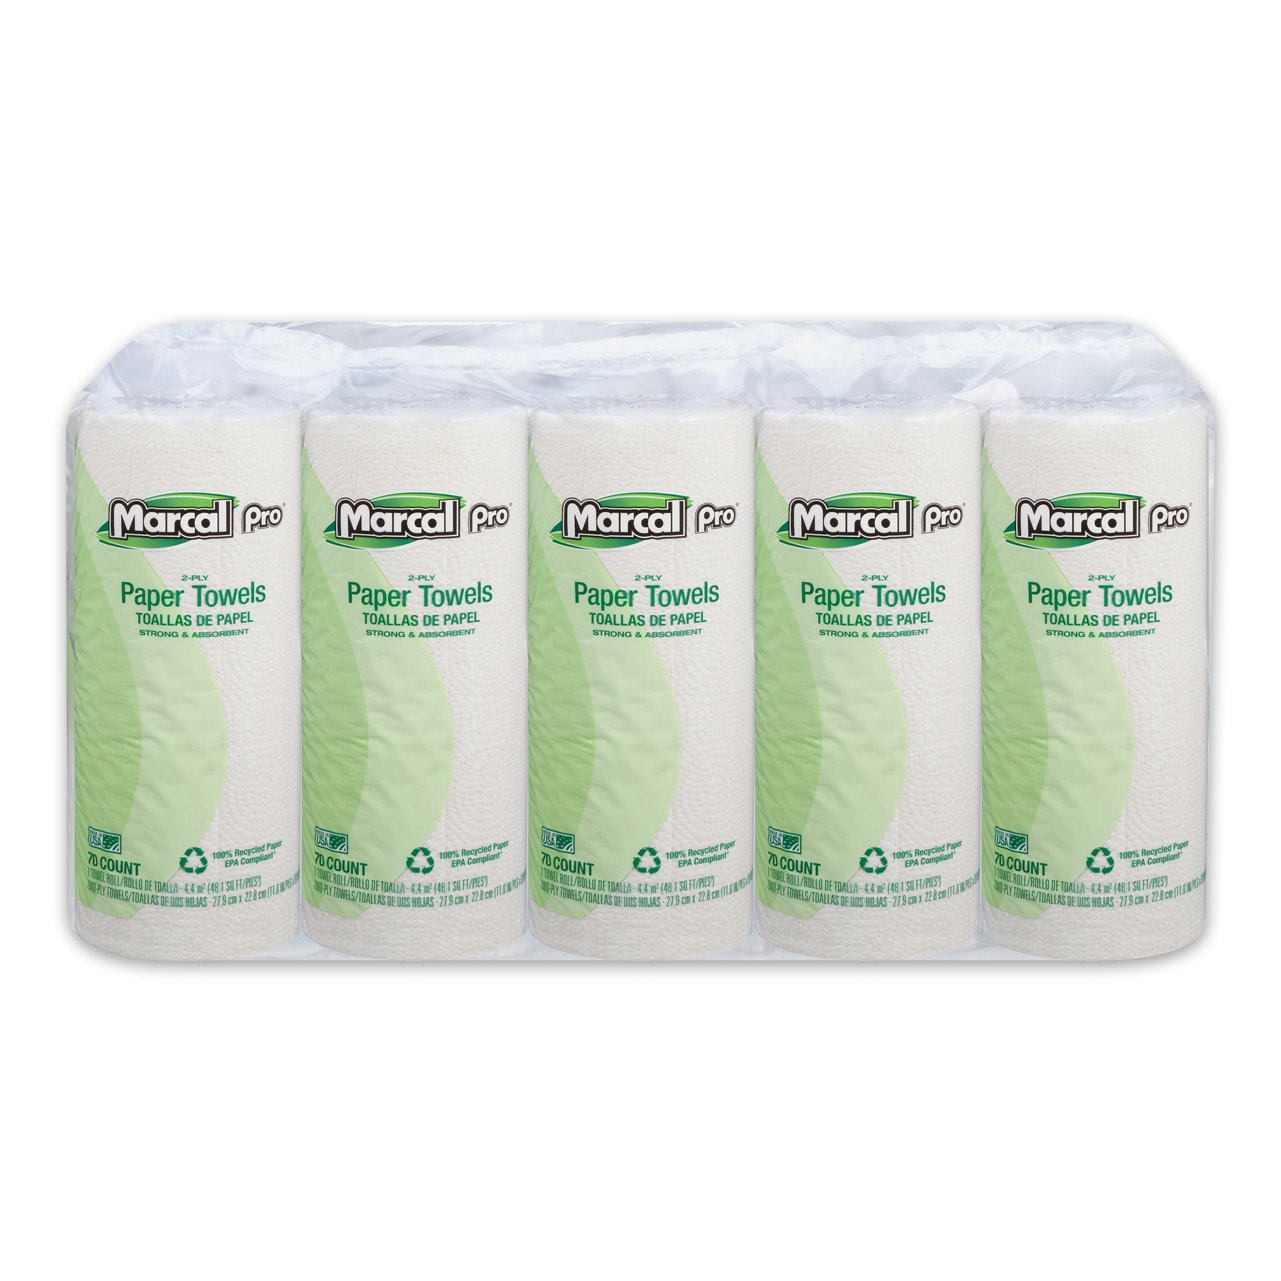 Amazon.com: Marcal Pro Paper Towels, 2-Ply, 70 Sheets Per Roll, 15 Individually Wrapped Rolls per Bundle - 100% Recycled - Strong and Absorbent White Paper ...